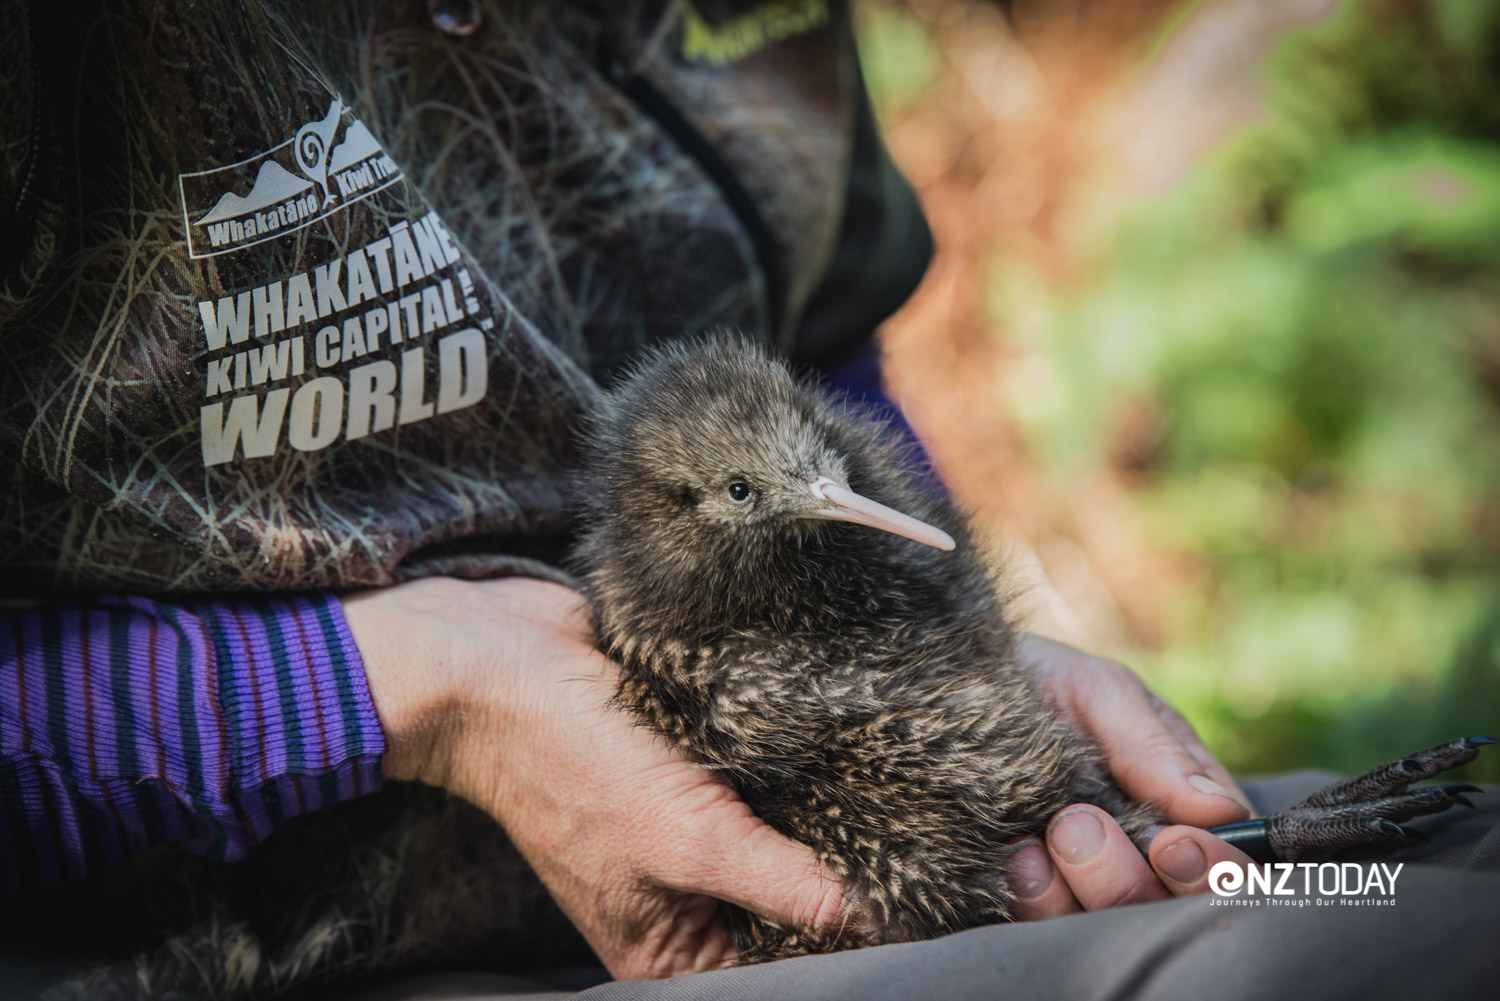 Whakatāne Kiwi Trust volunteer does a health check on a kiwi check. The kiwi was known as 'te manu huna a Tāne', the hidden bird of Tāne (god of the forest), because it came out mostly at night and was seldom seen